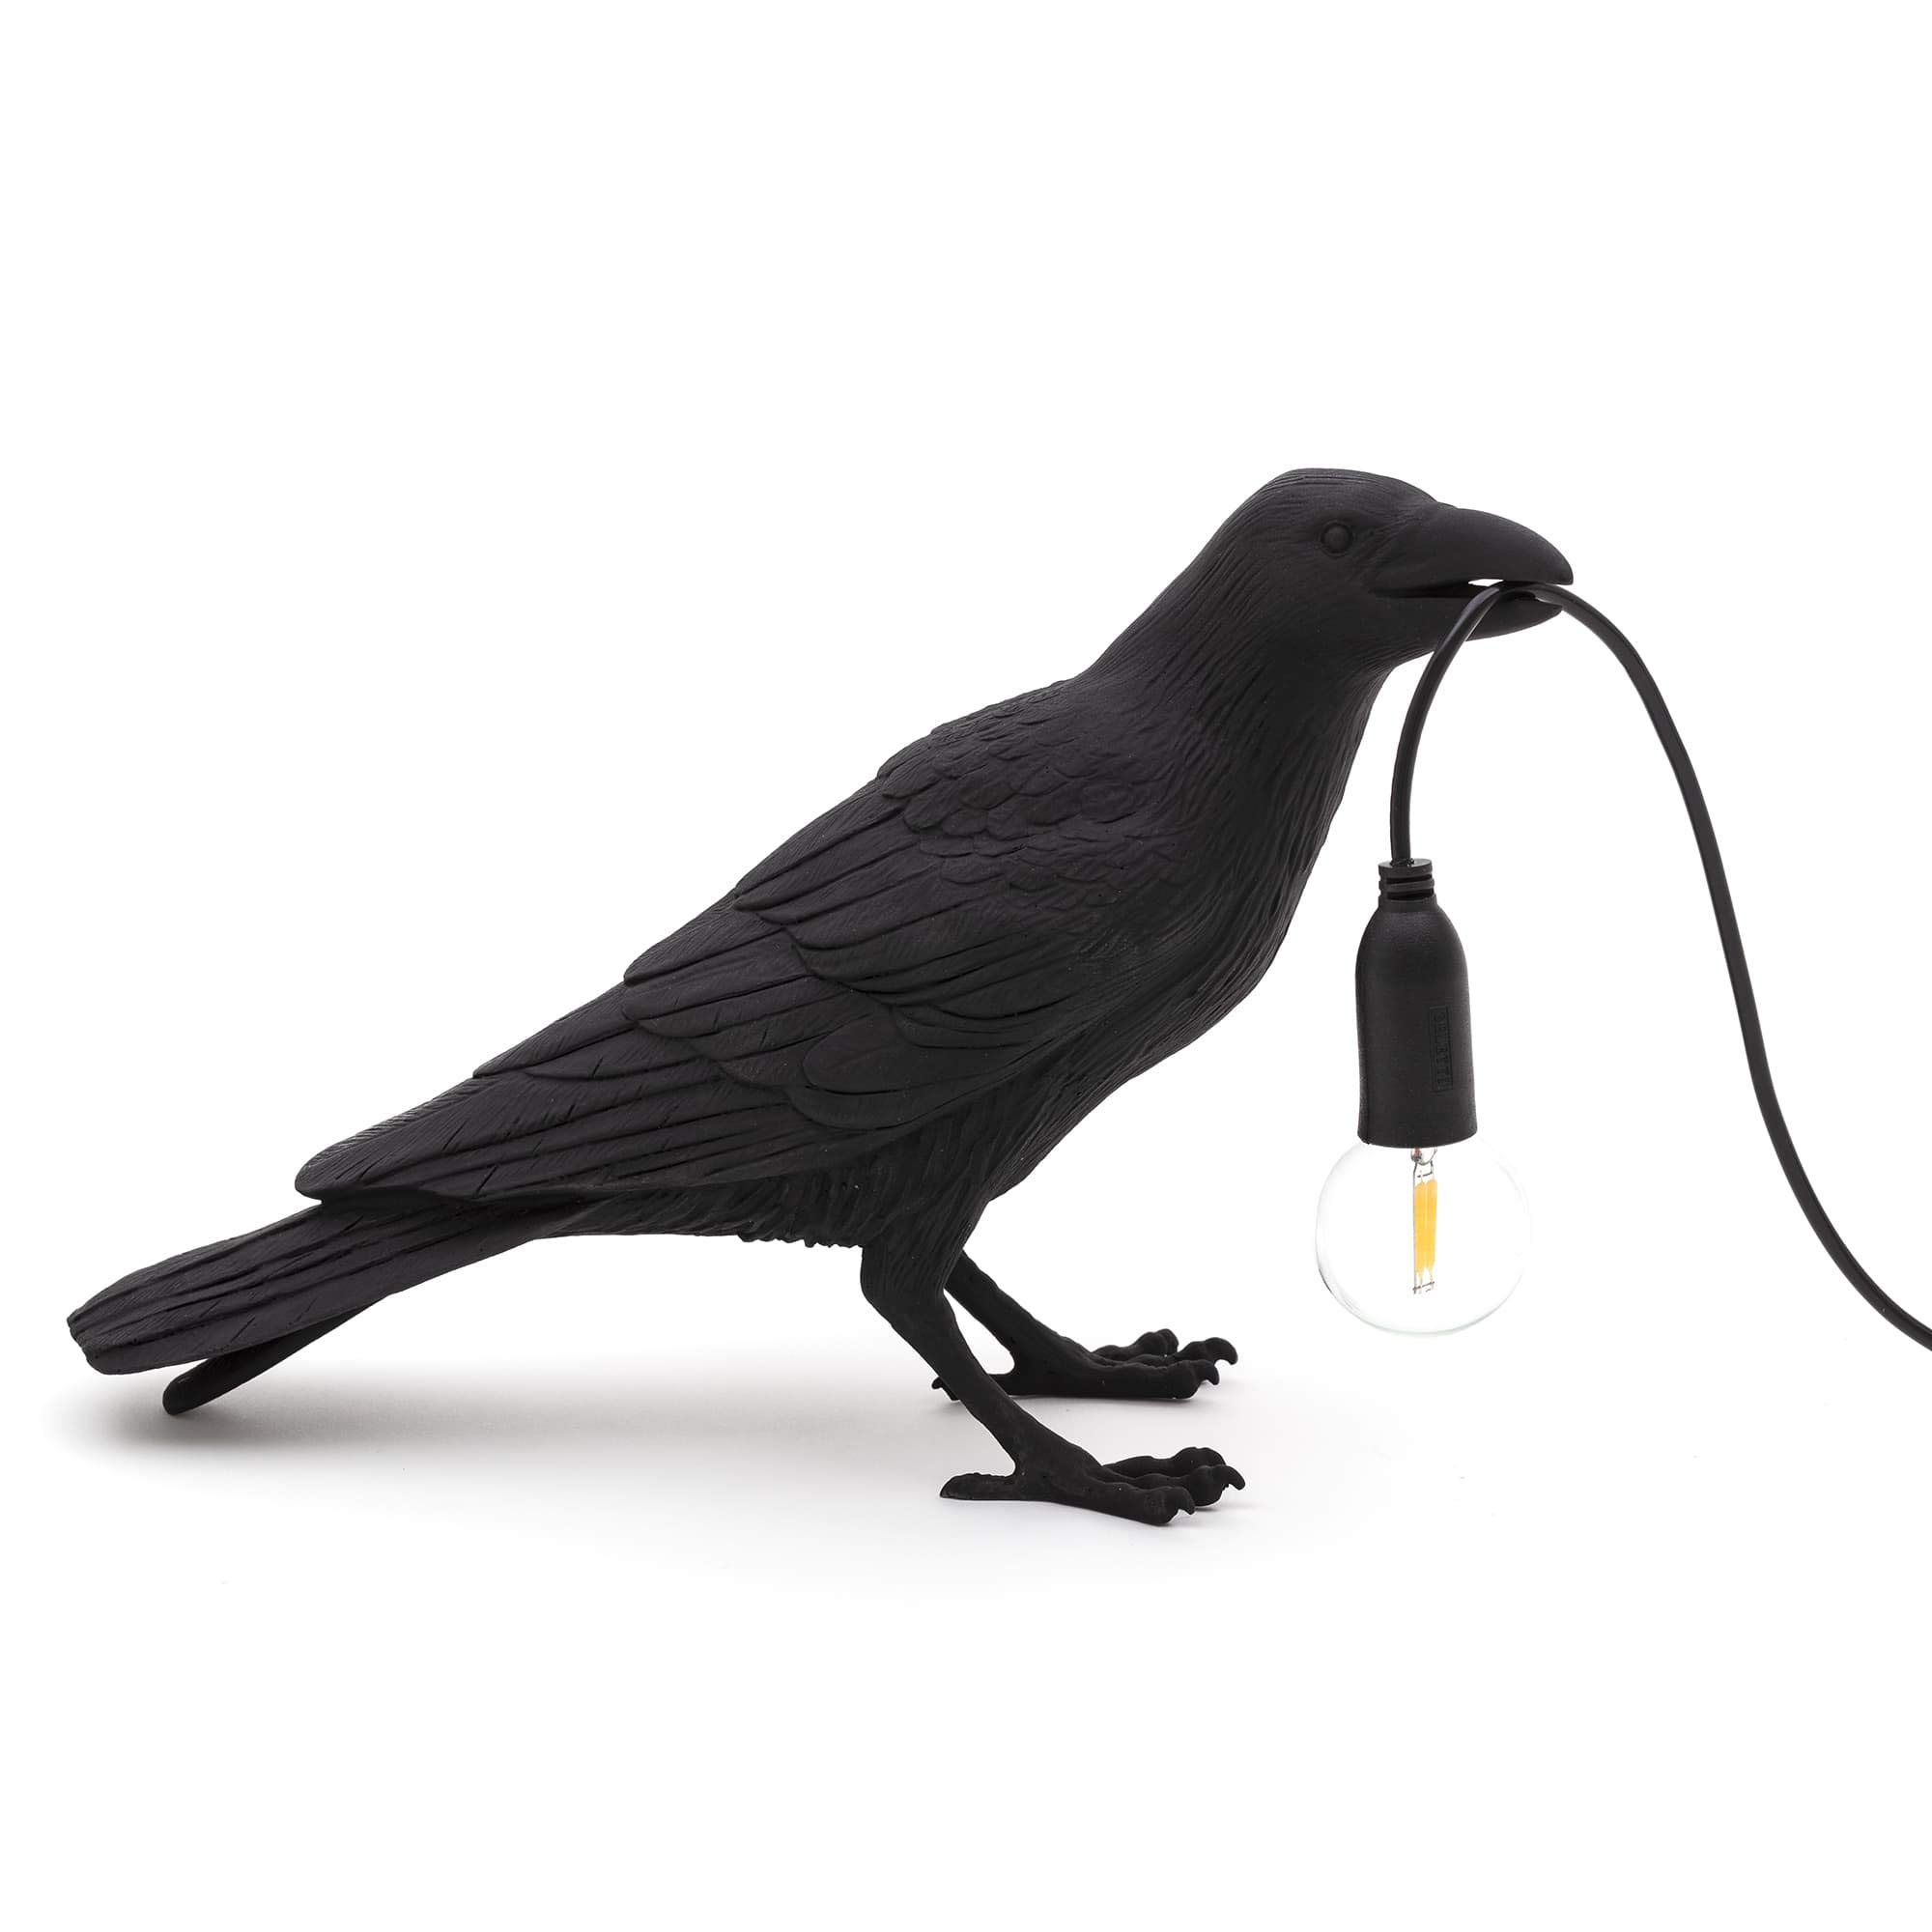 Seletti Bird Lamp Waiting, Black